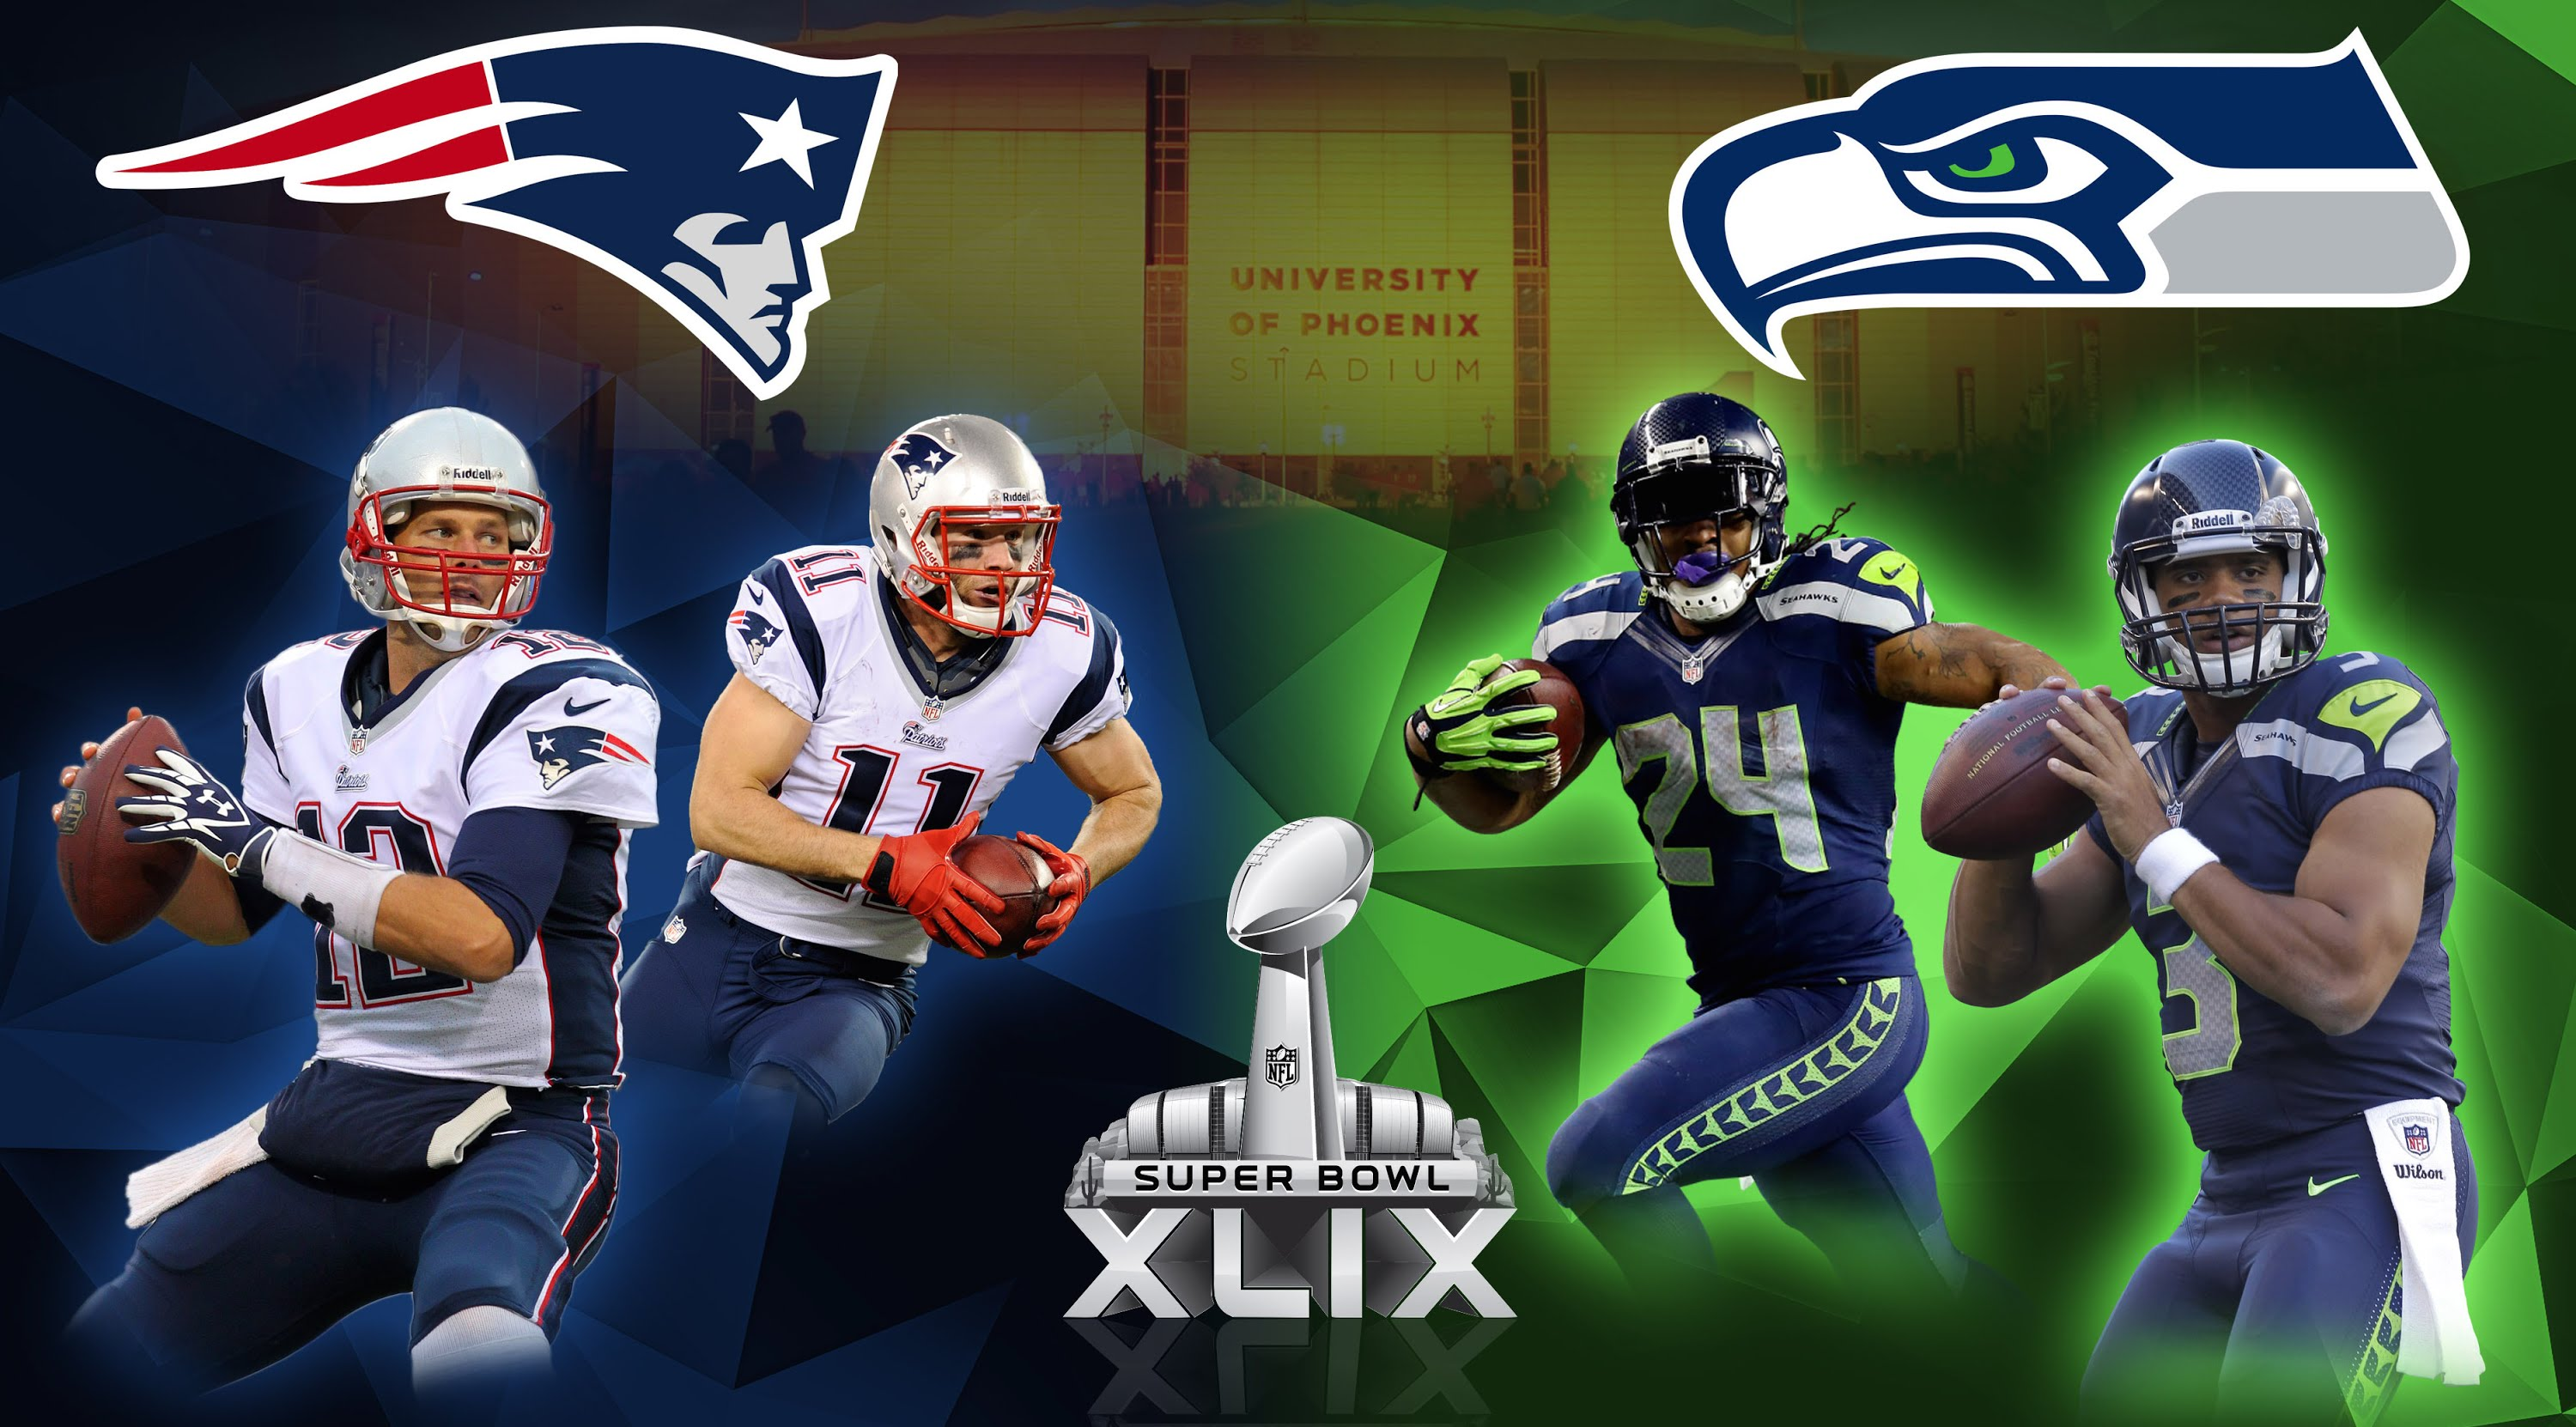 [NFL] Super Bowl XLIX: Preview